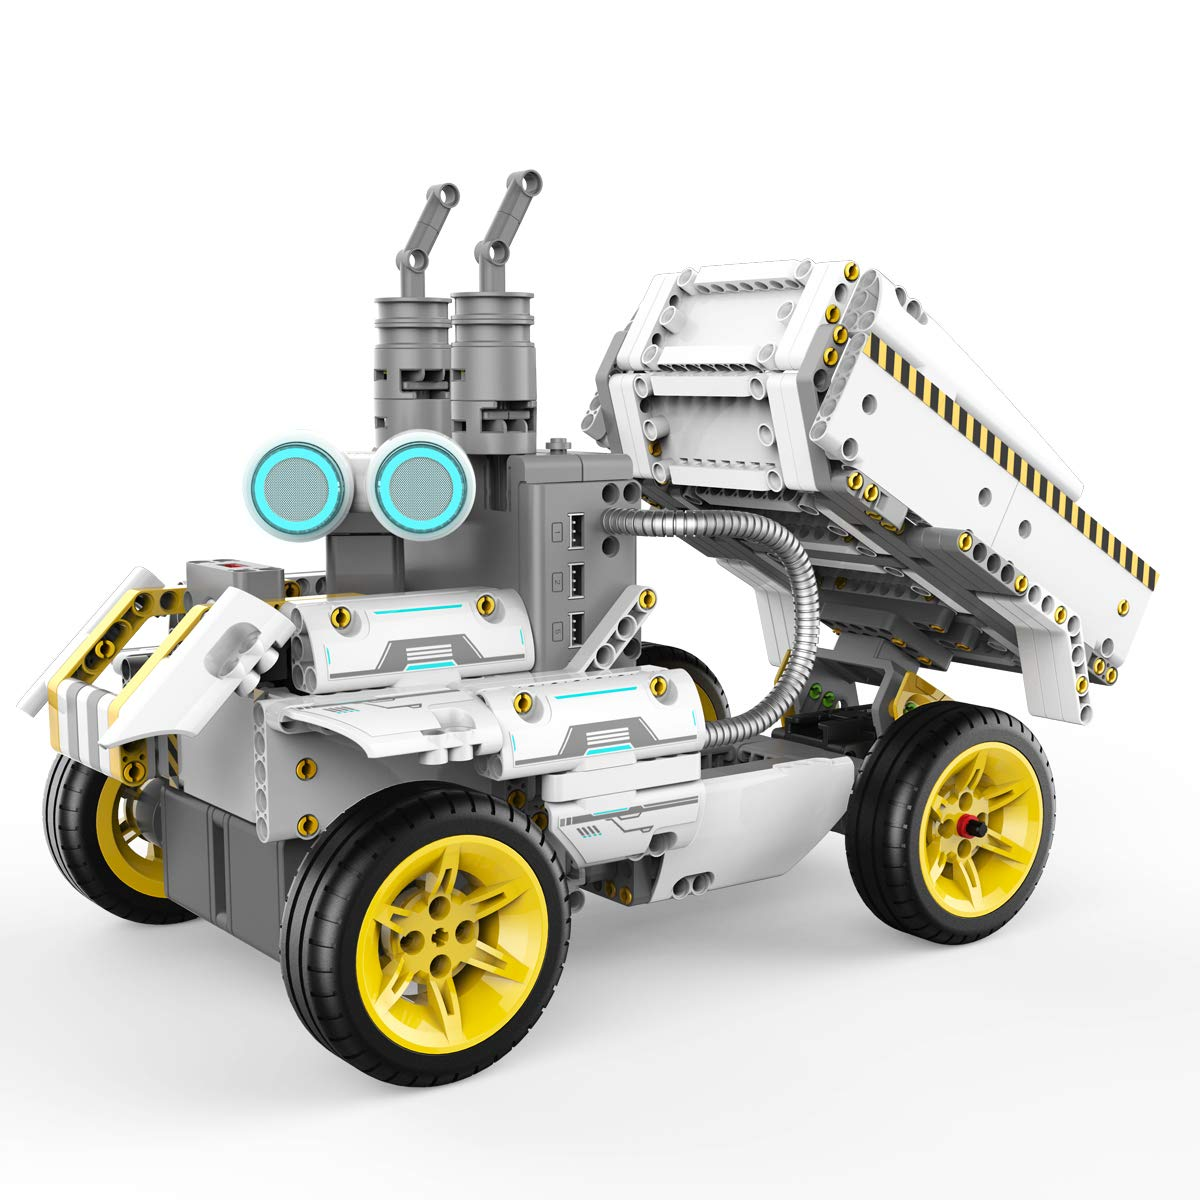 UBTECH JIMU Robot Builderbots Series: Overdrive Kit / App-Enabled Building and Coding STEM Learning Kit (410 Parts and Connectors) by UBTECH (Image #1)